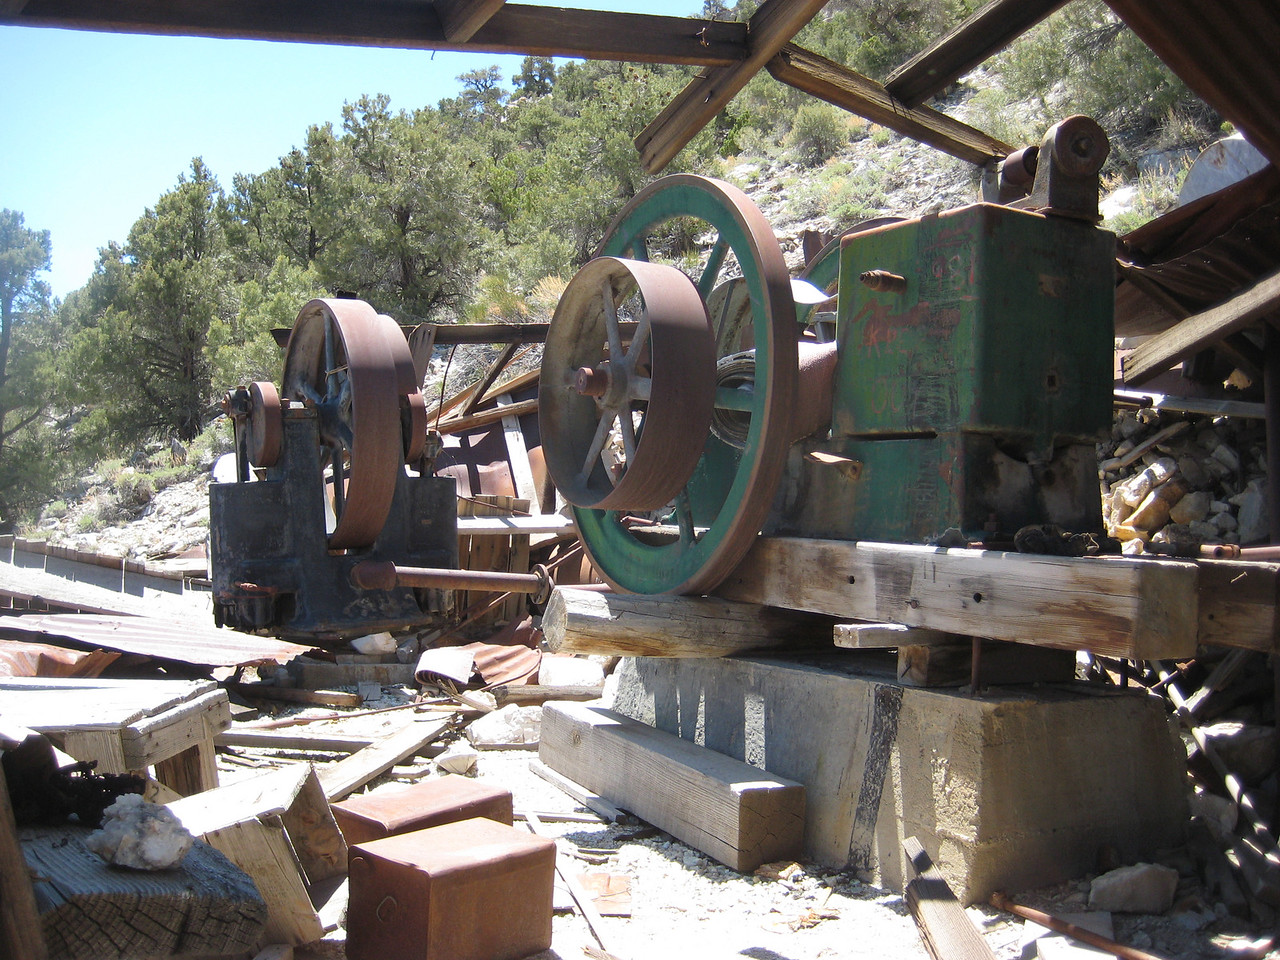 Air compressor and Steam engine for running the belts and providing air inside the mines and tools.